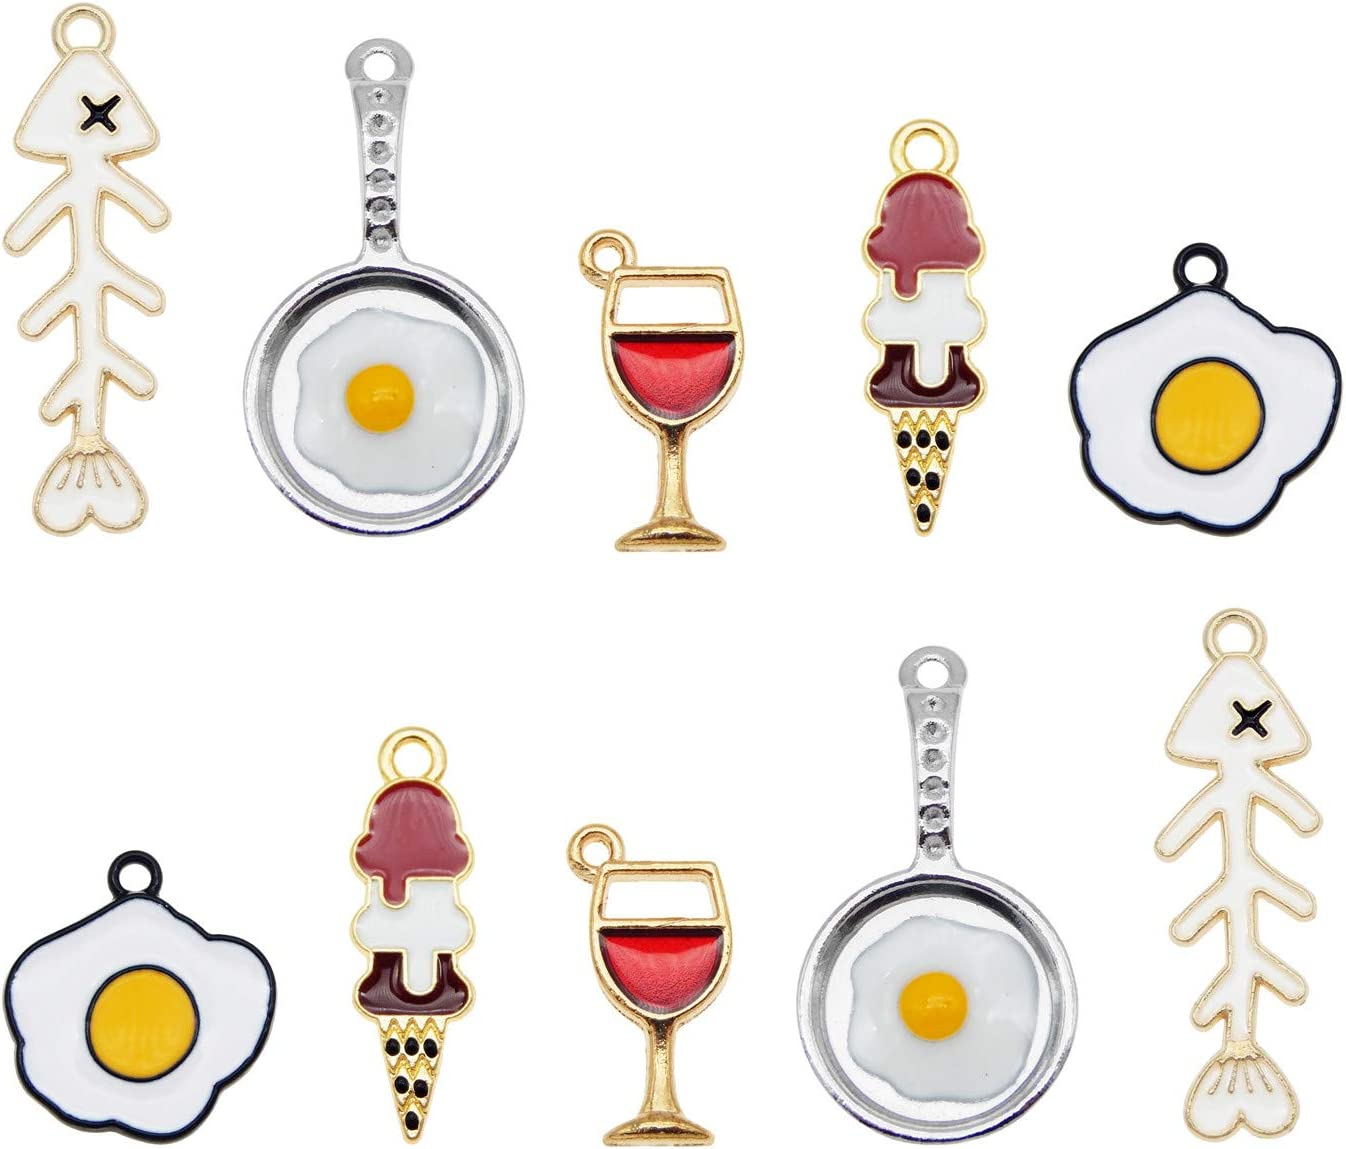 50pcs Mixed Enamel Food Charm Ice Cream Ball Cone Fish Fried Egg Glass Wine Pendants for Jewelry Making Bracelet Necklace Girl DIY Craft Finding